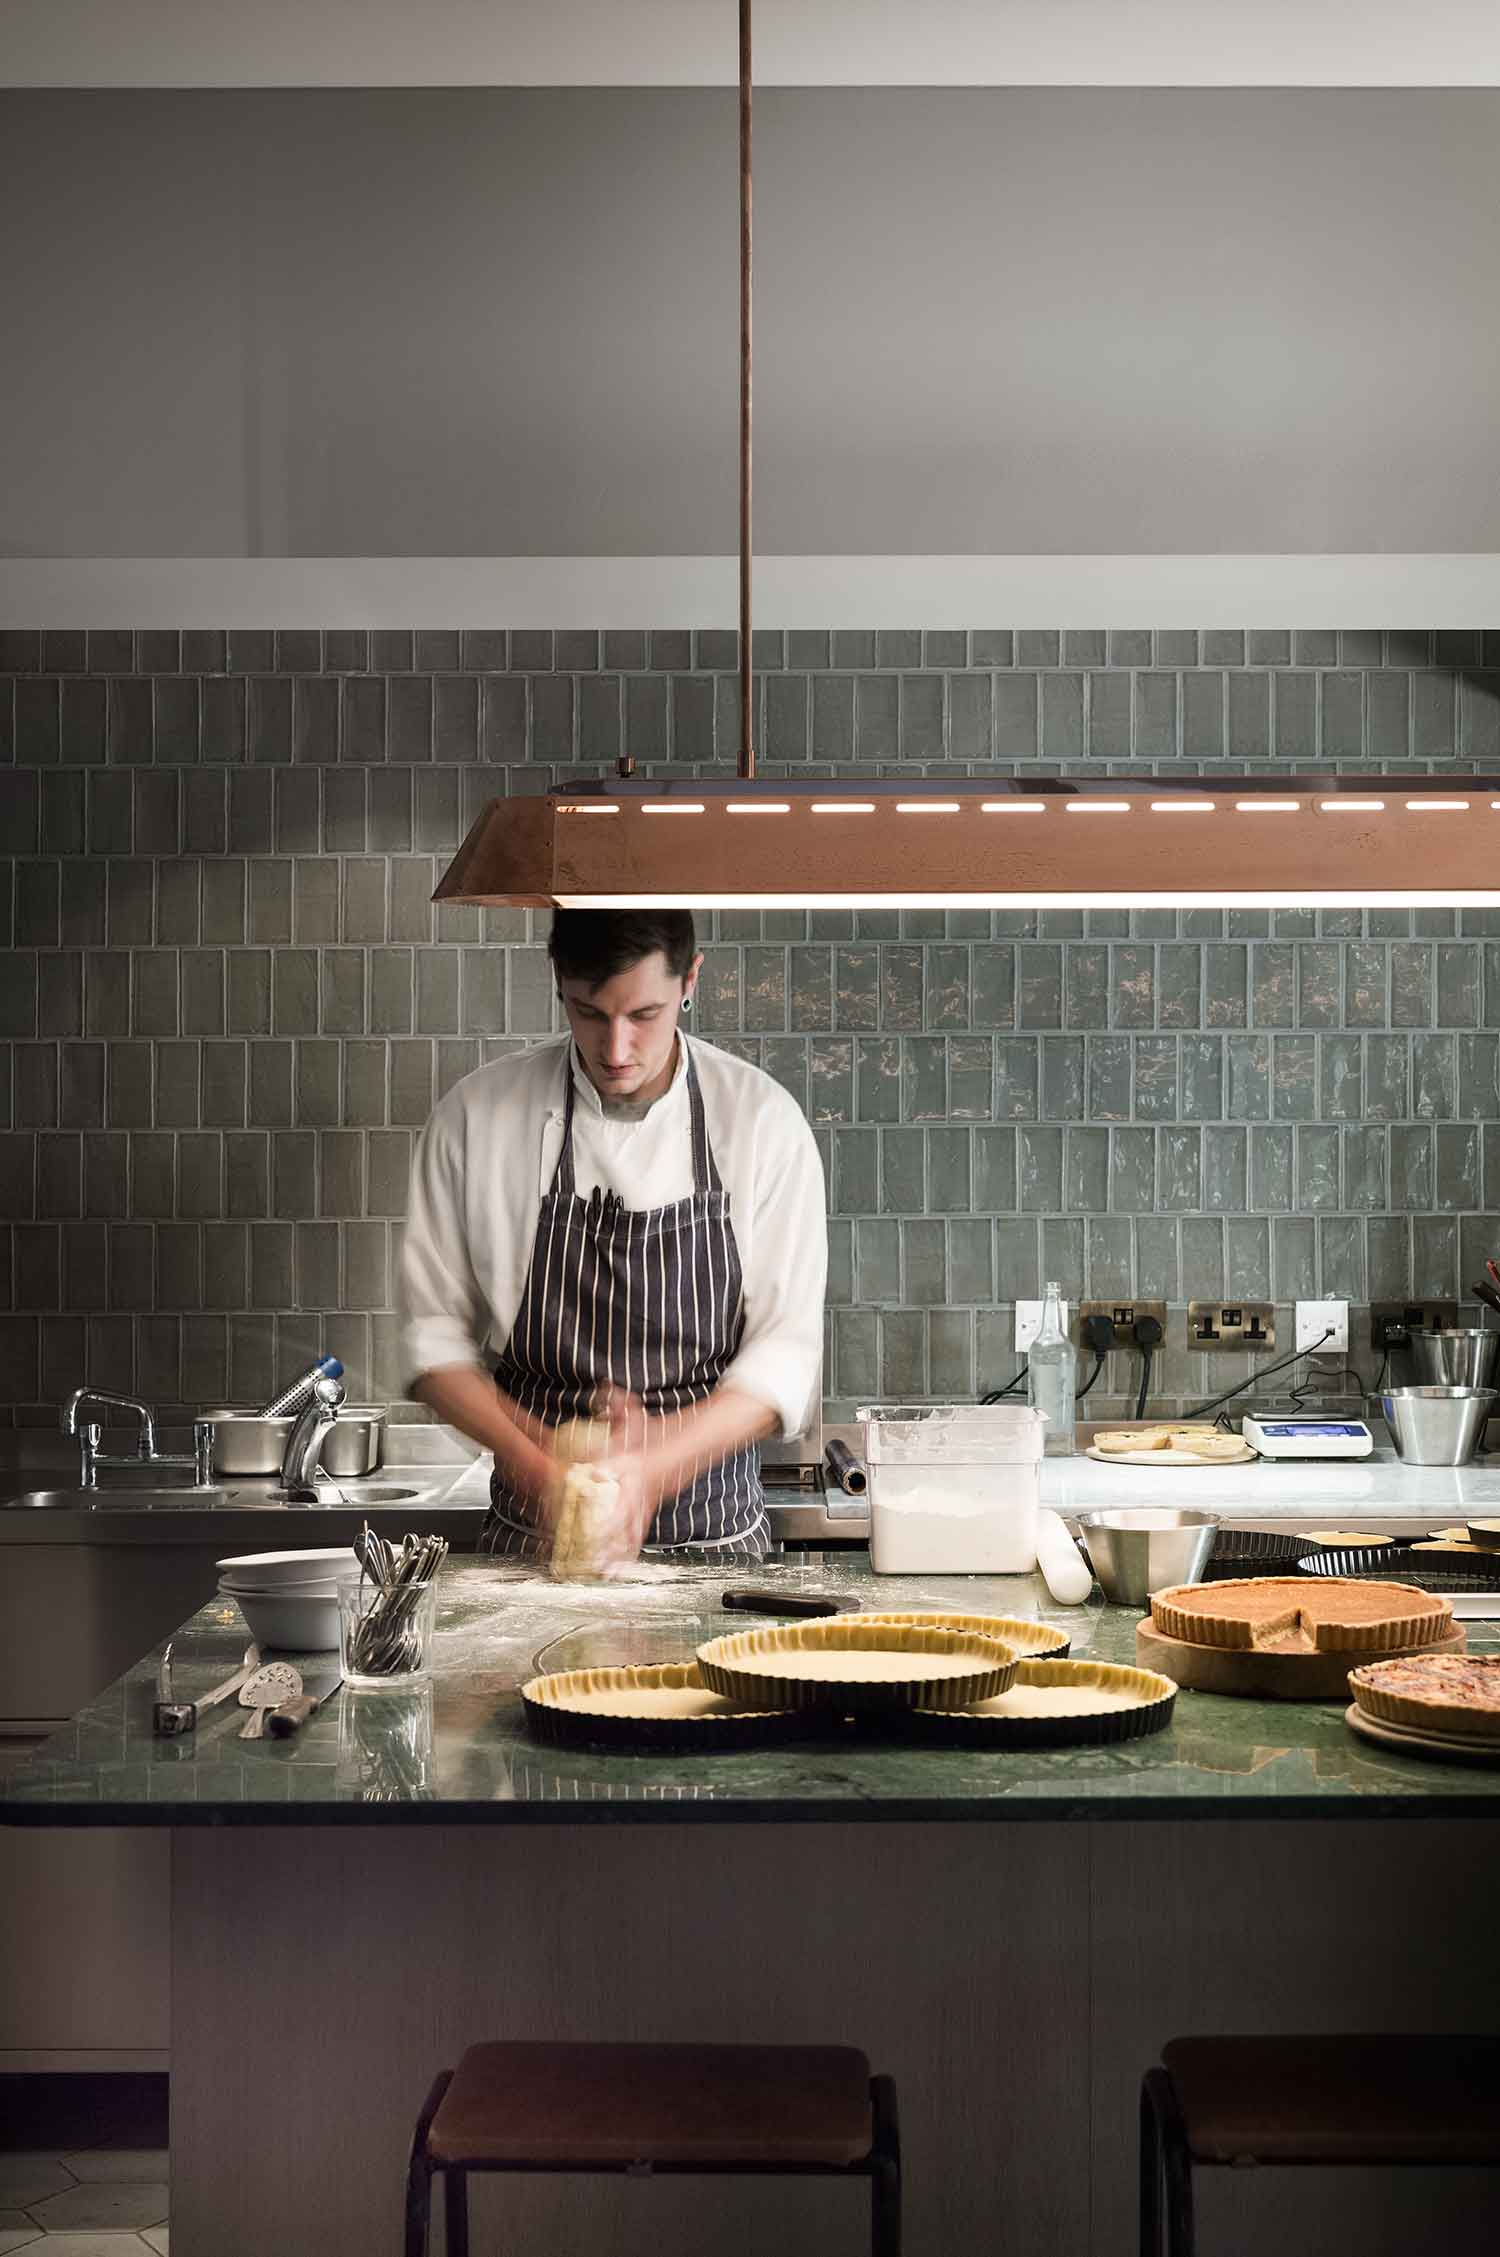 Olympic Studios Pastry Bar by Simone McEwan | Yellowtrace